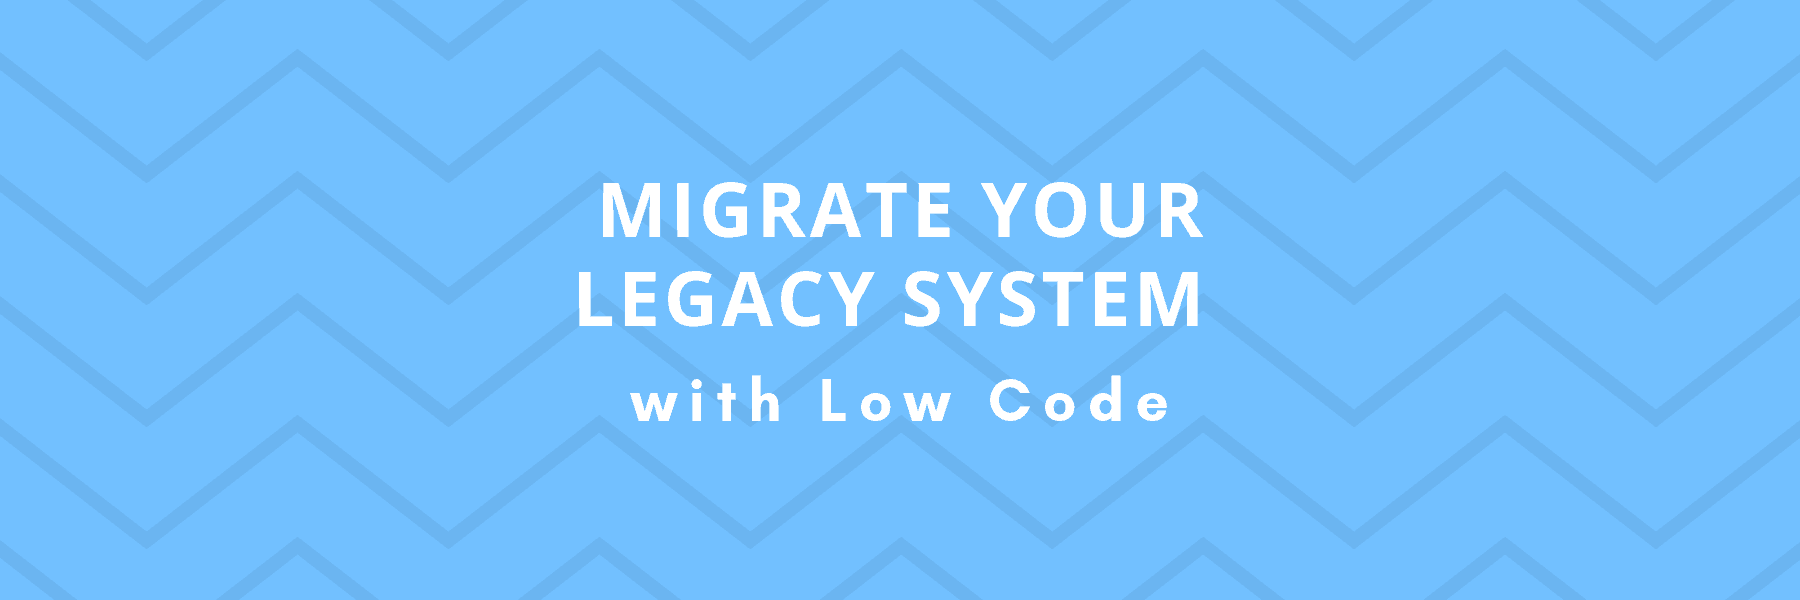 migrate your legacy system with low code